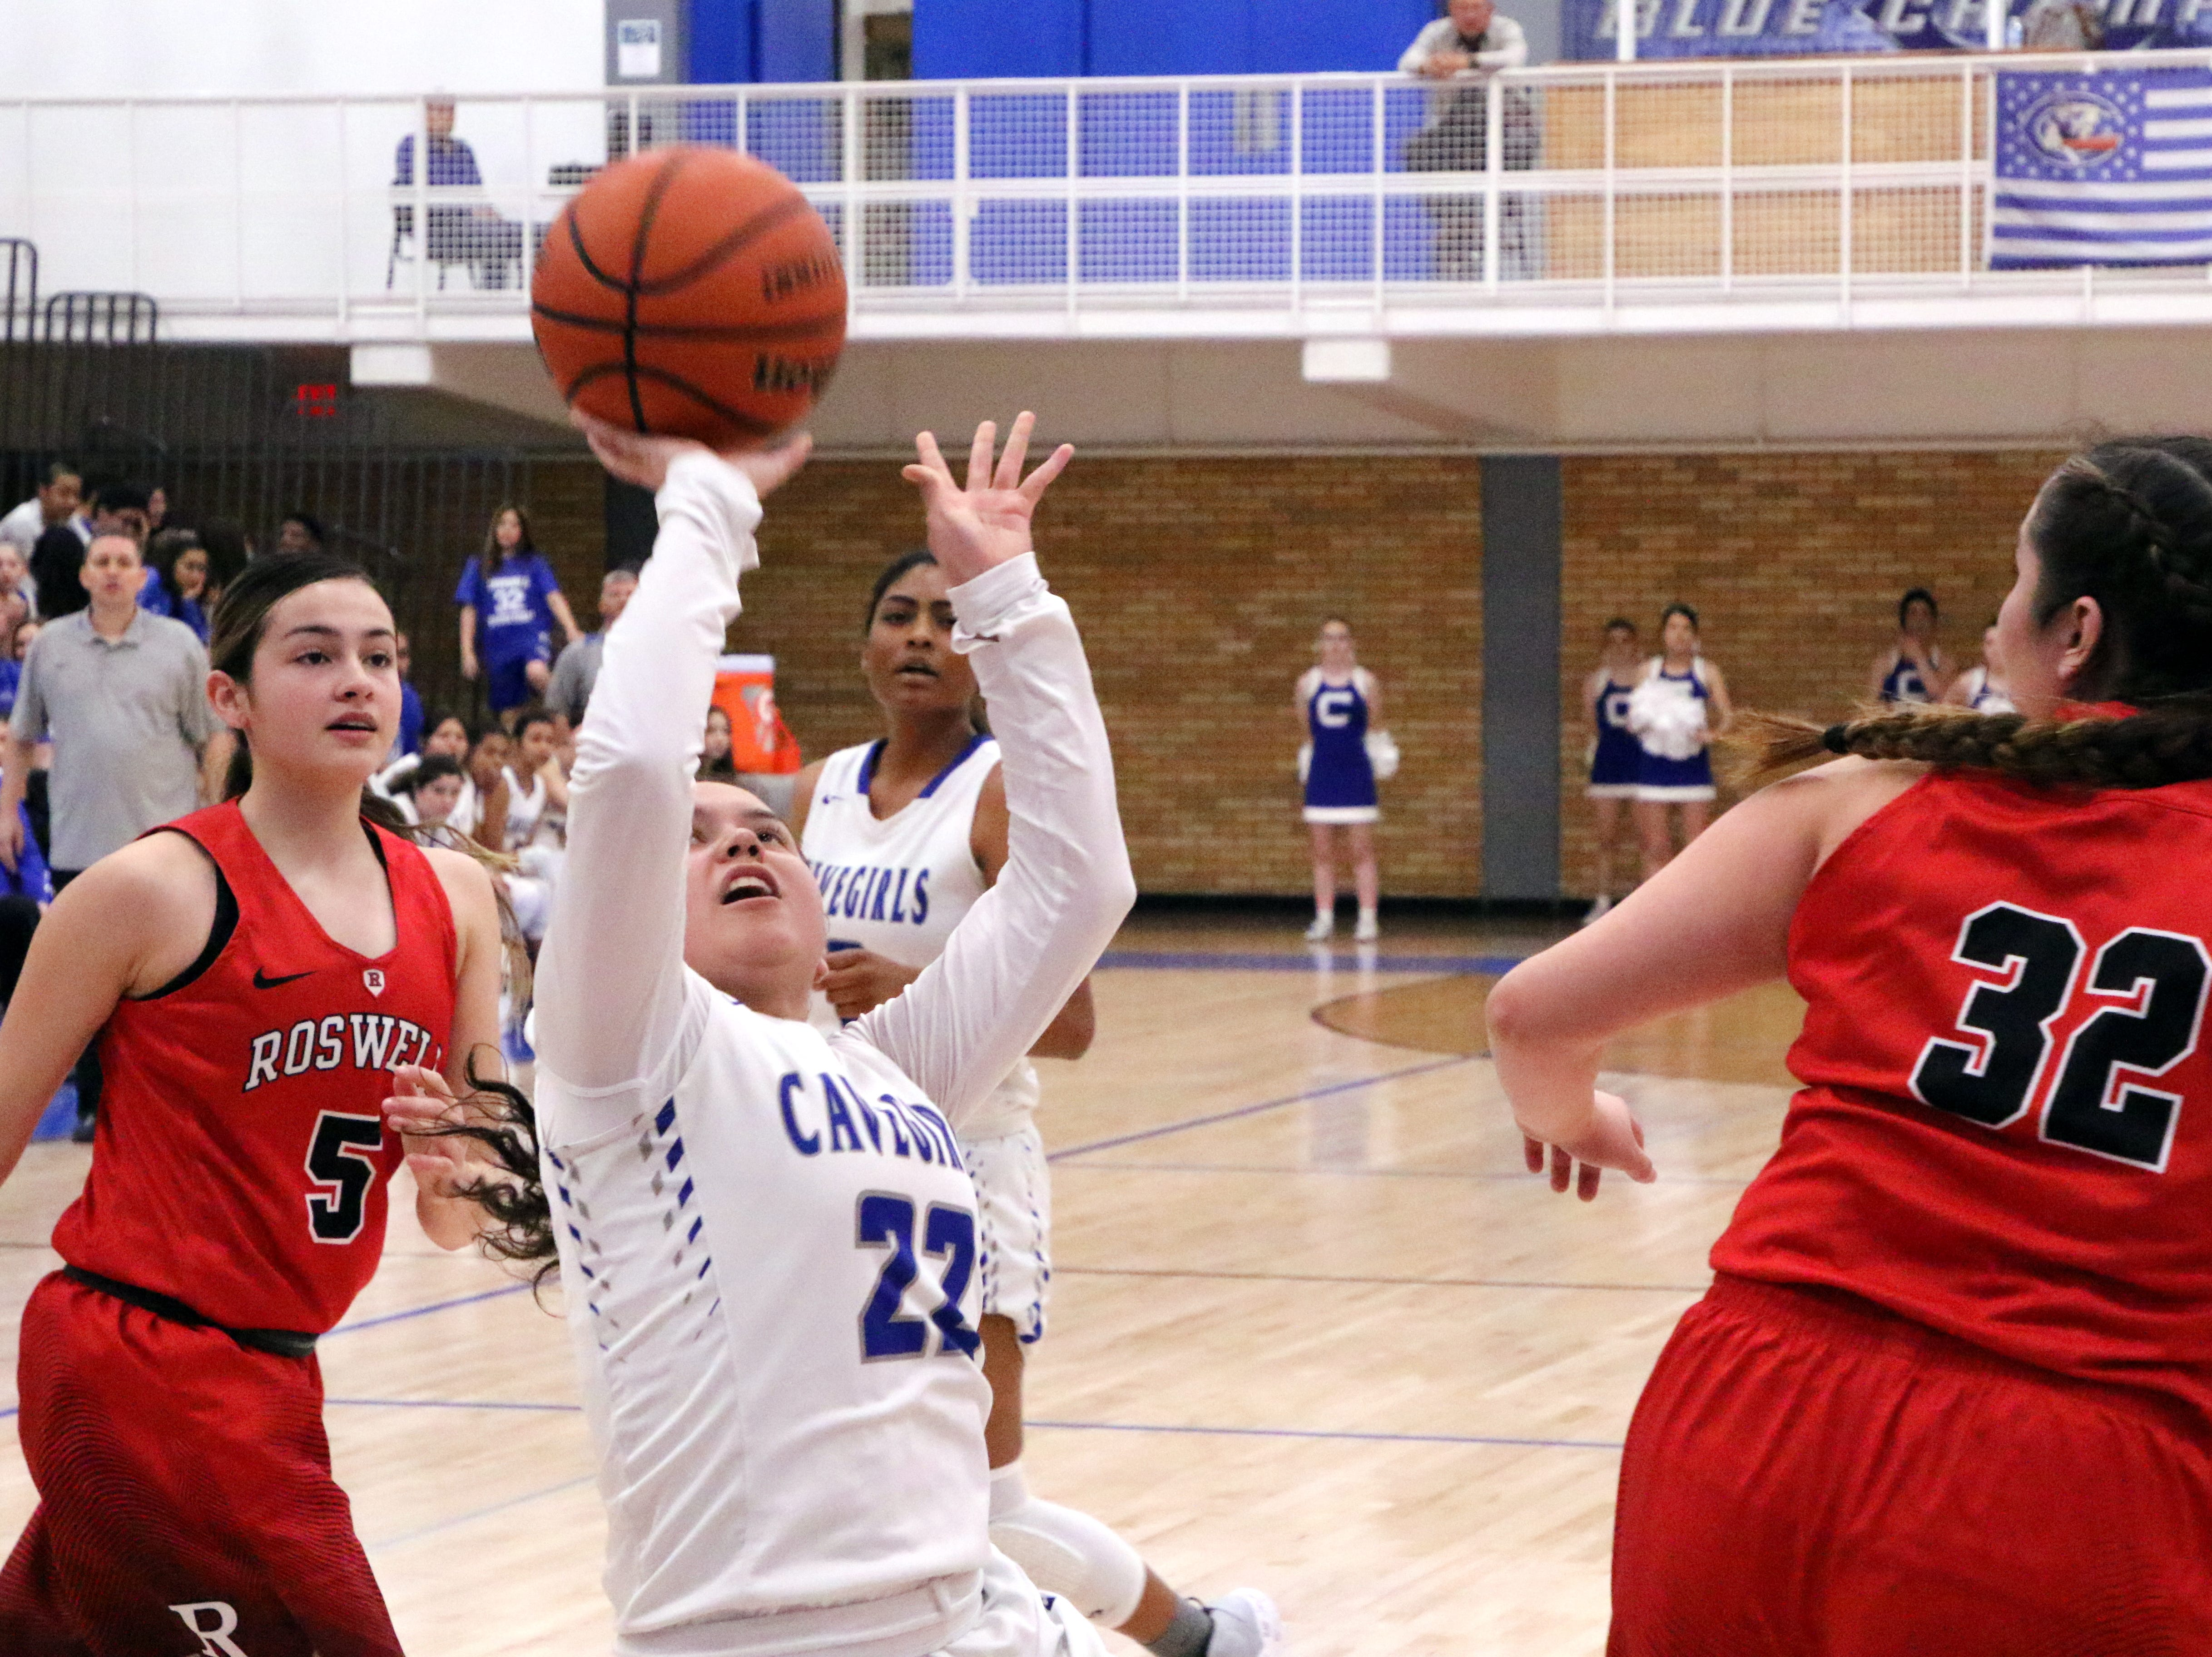 Nyah Chacon takes a contested shot during Friday's game.